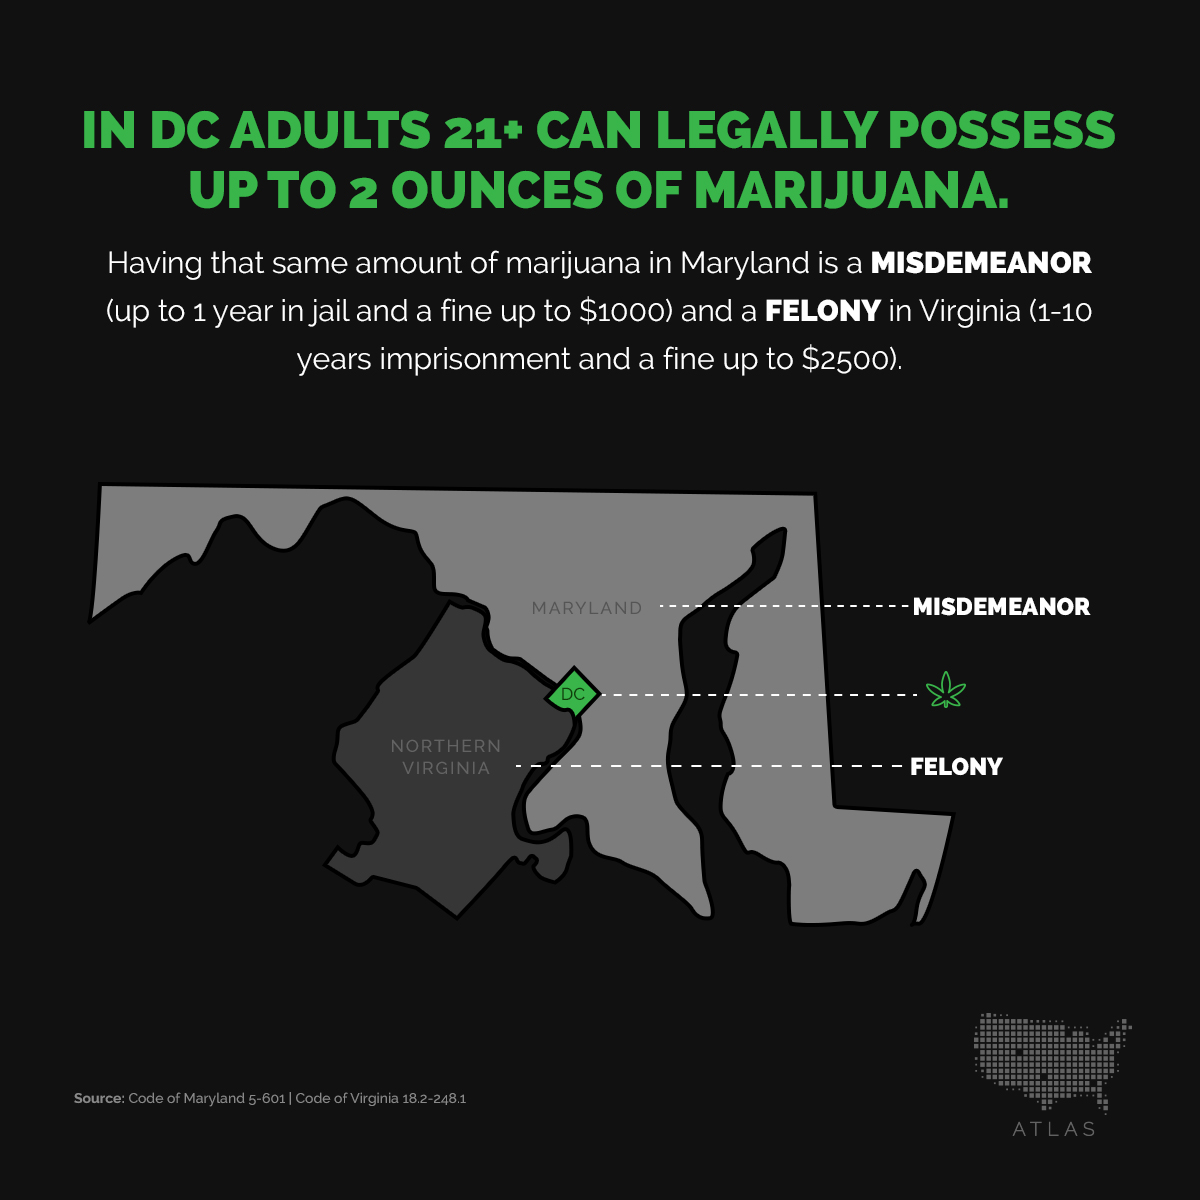 DC is unique among its neighbors for allowing any amount of marijuana possession legally.  Taking that marijuana outside the District can mean hefty penalties